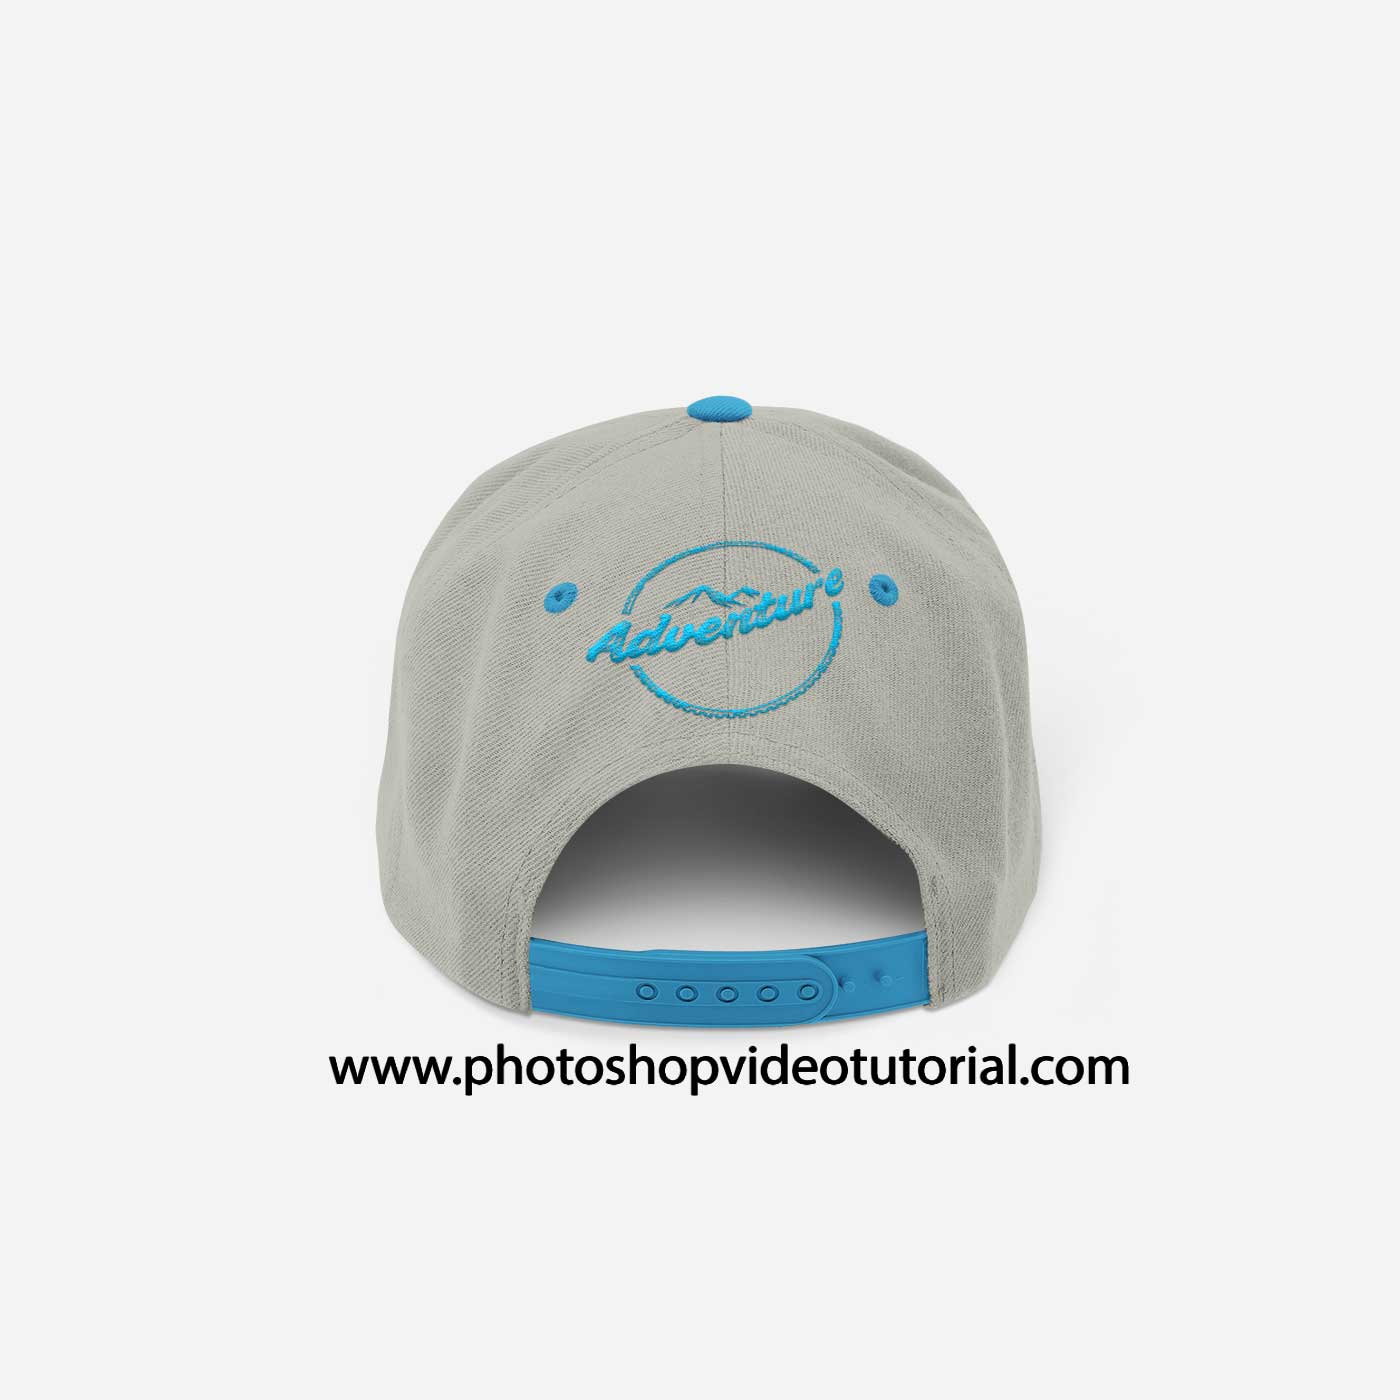 Label Exhibition Cap Mockup